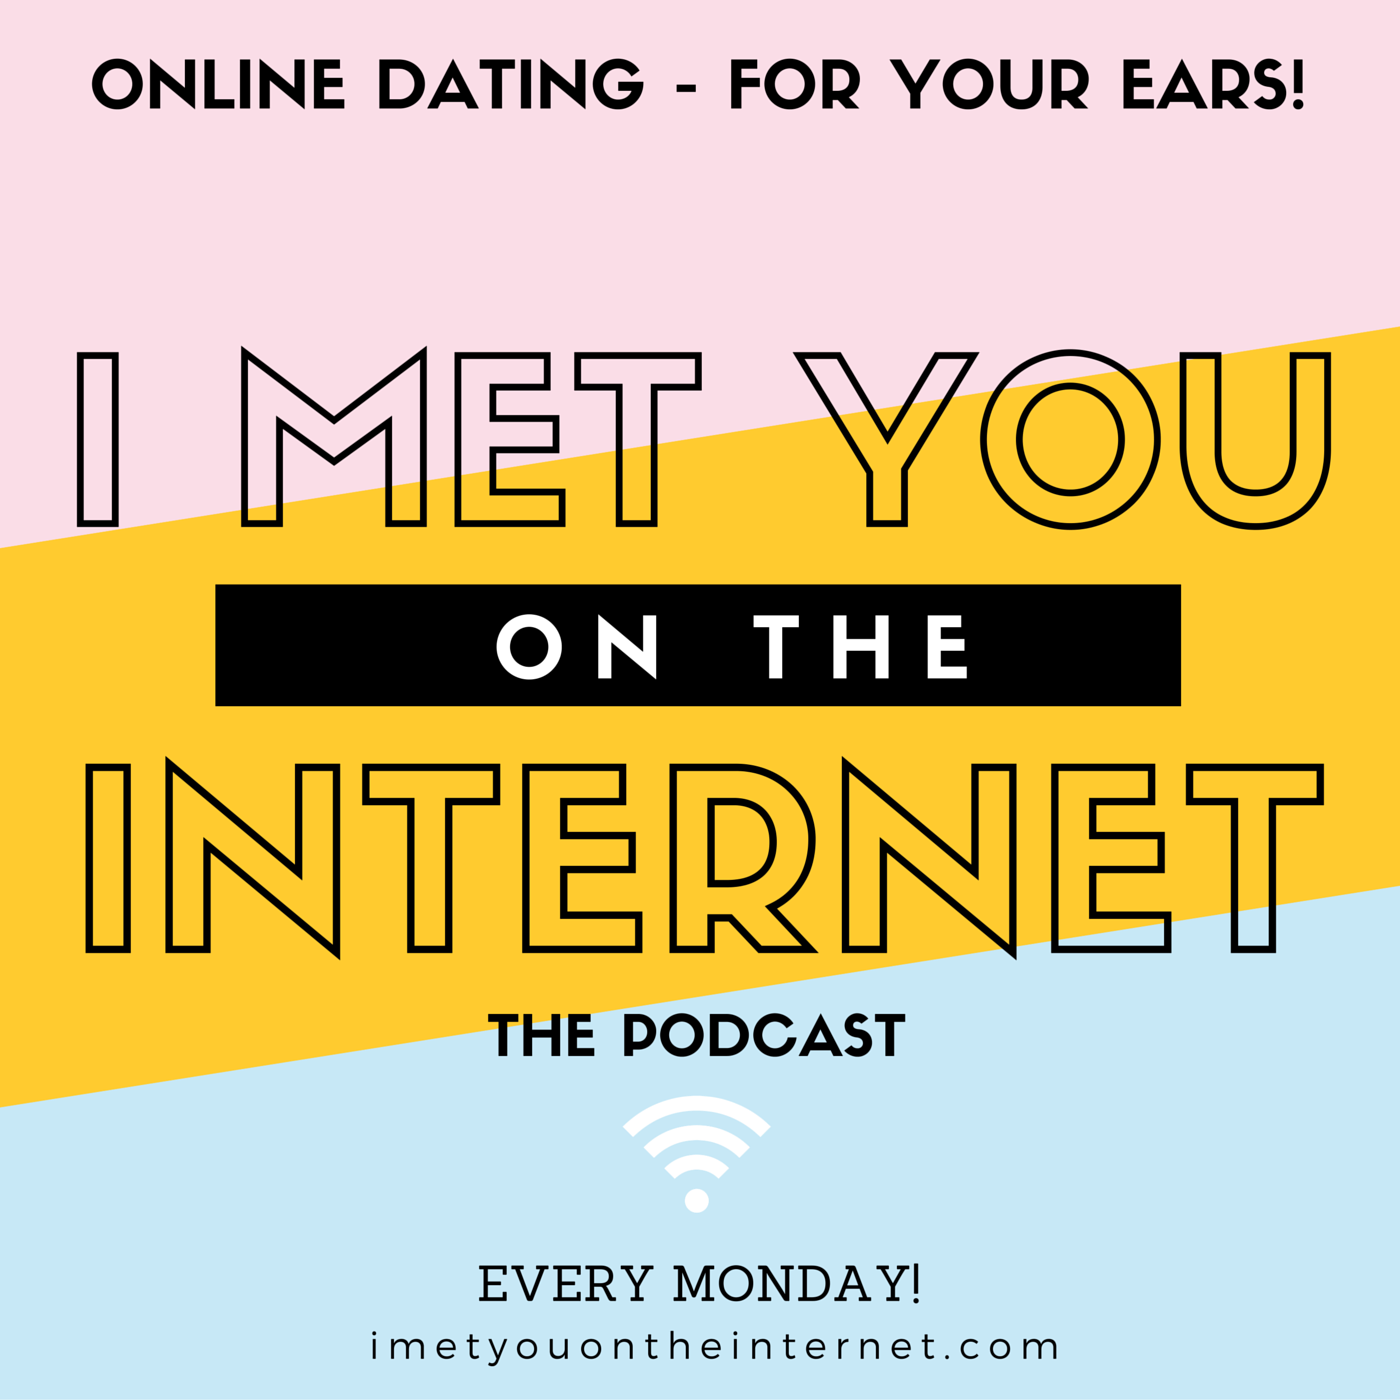 I Met You on the Internet